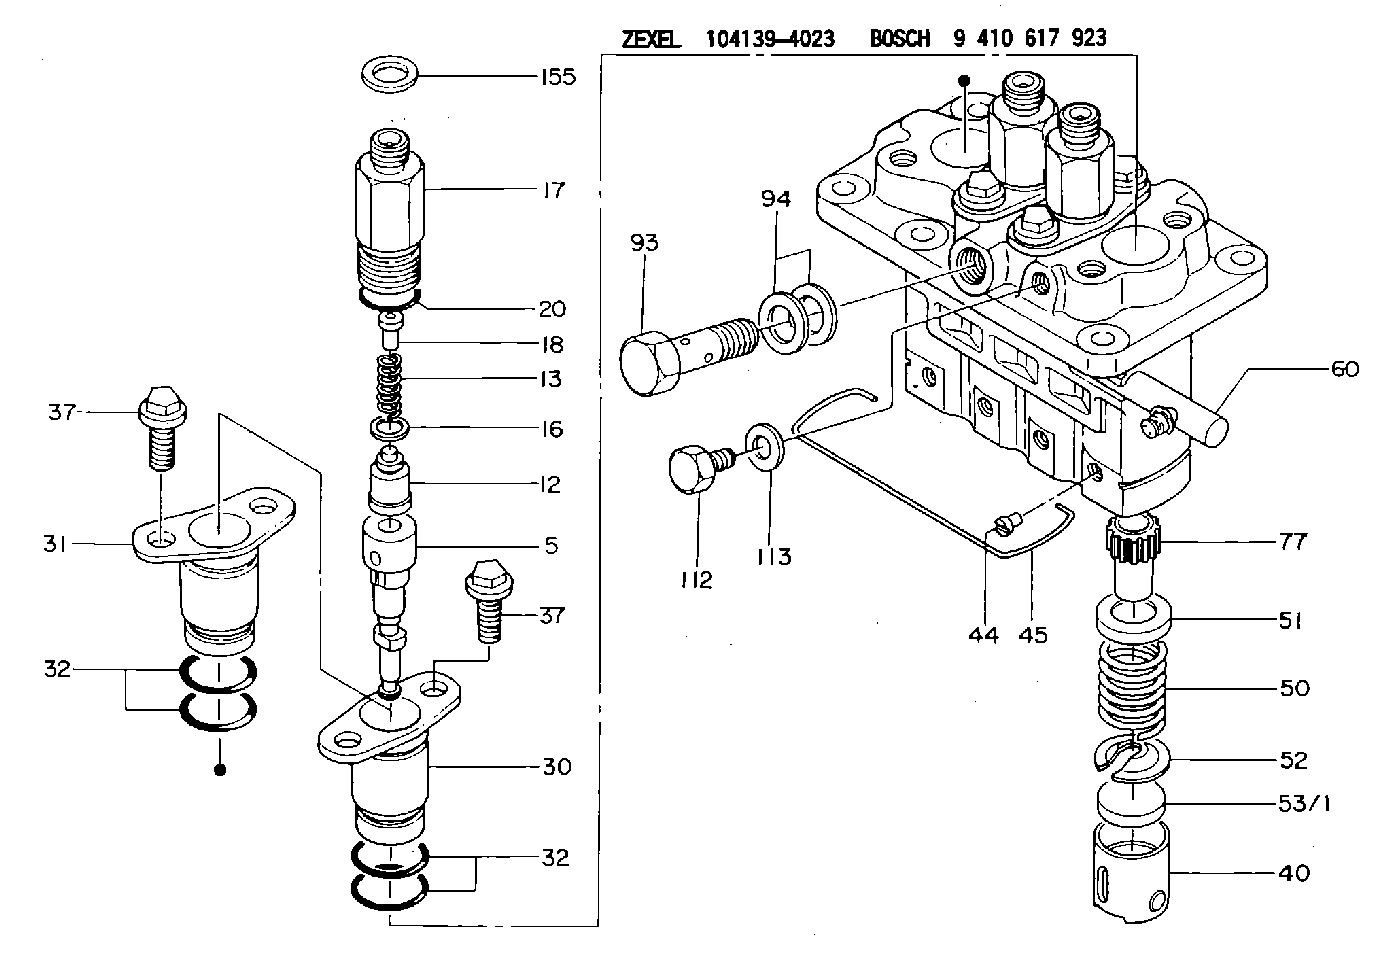 Bosch pfr injection pump service manual